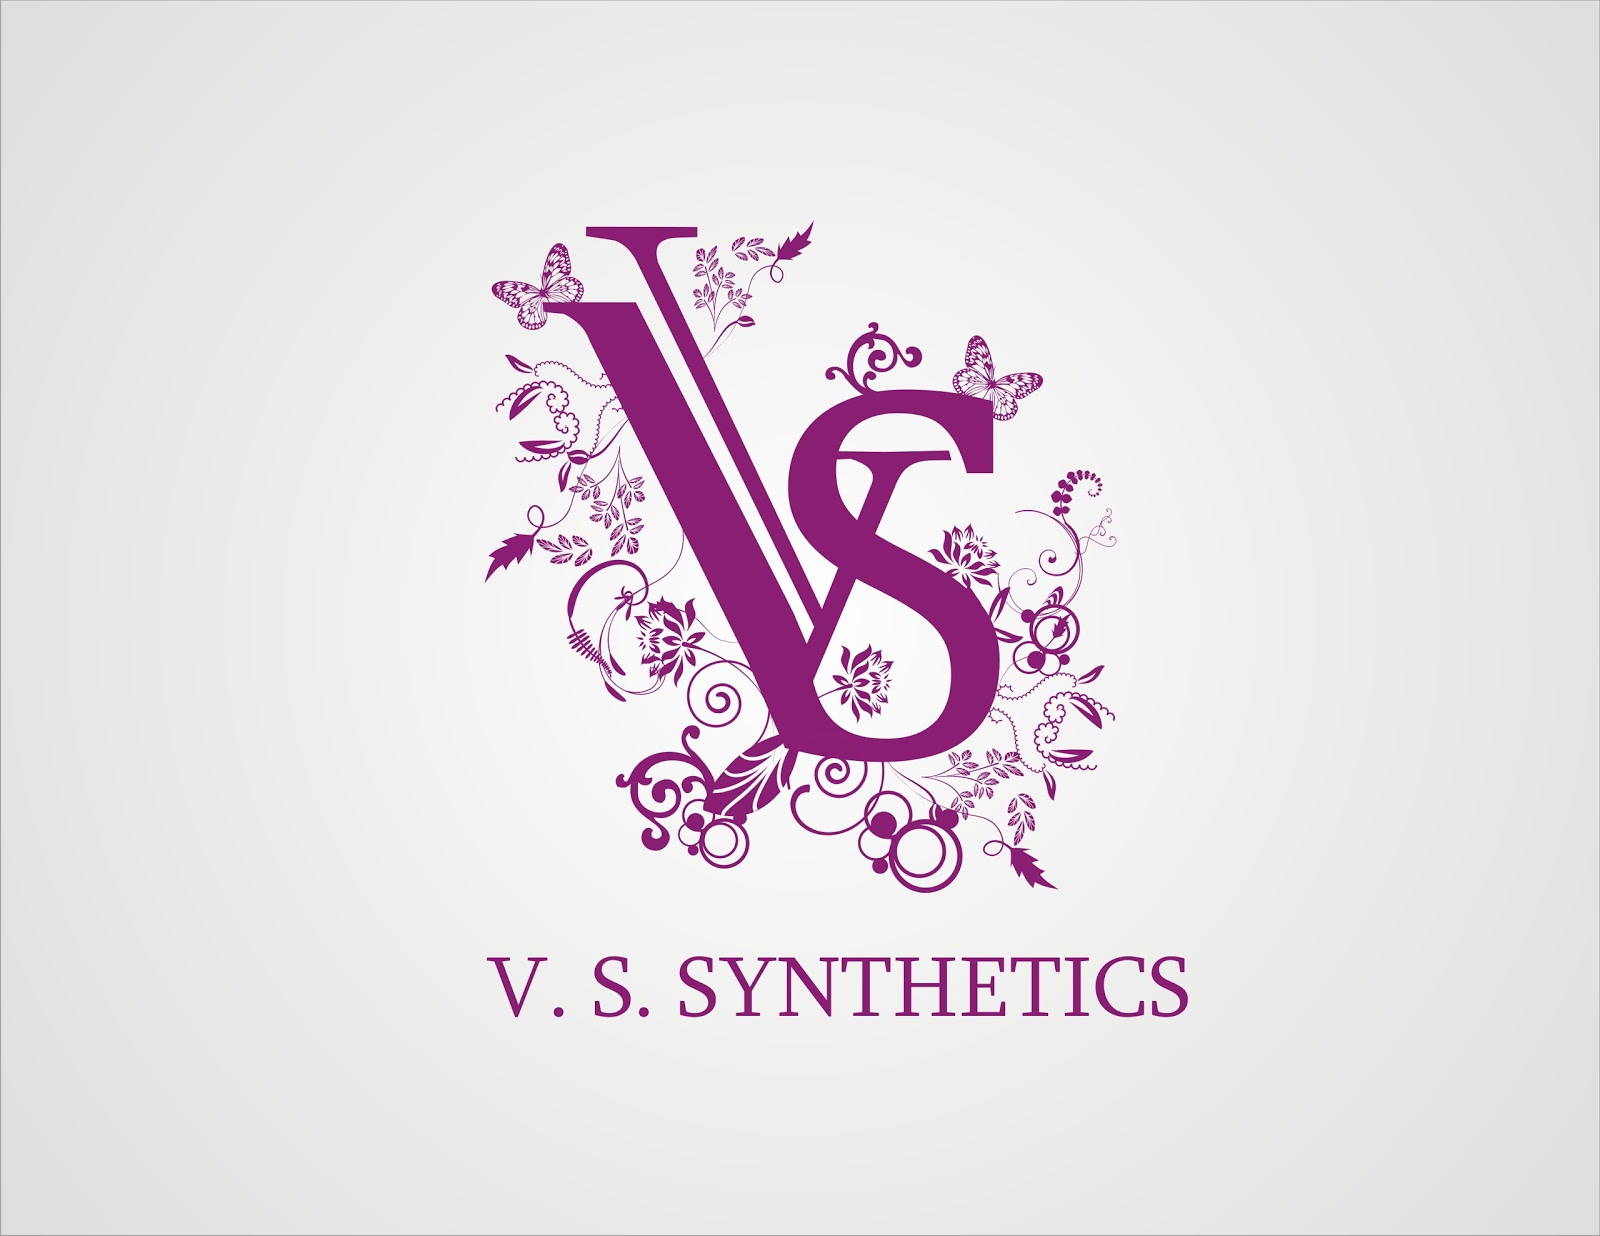 Vs logo design images galleries with for Decor logo